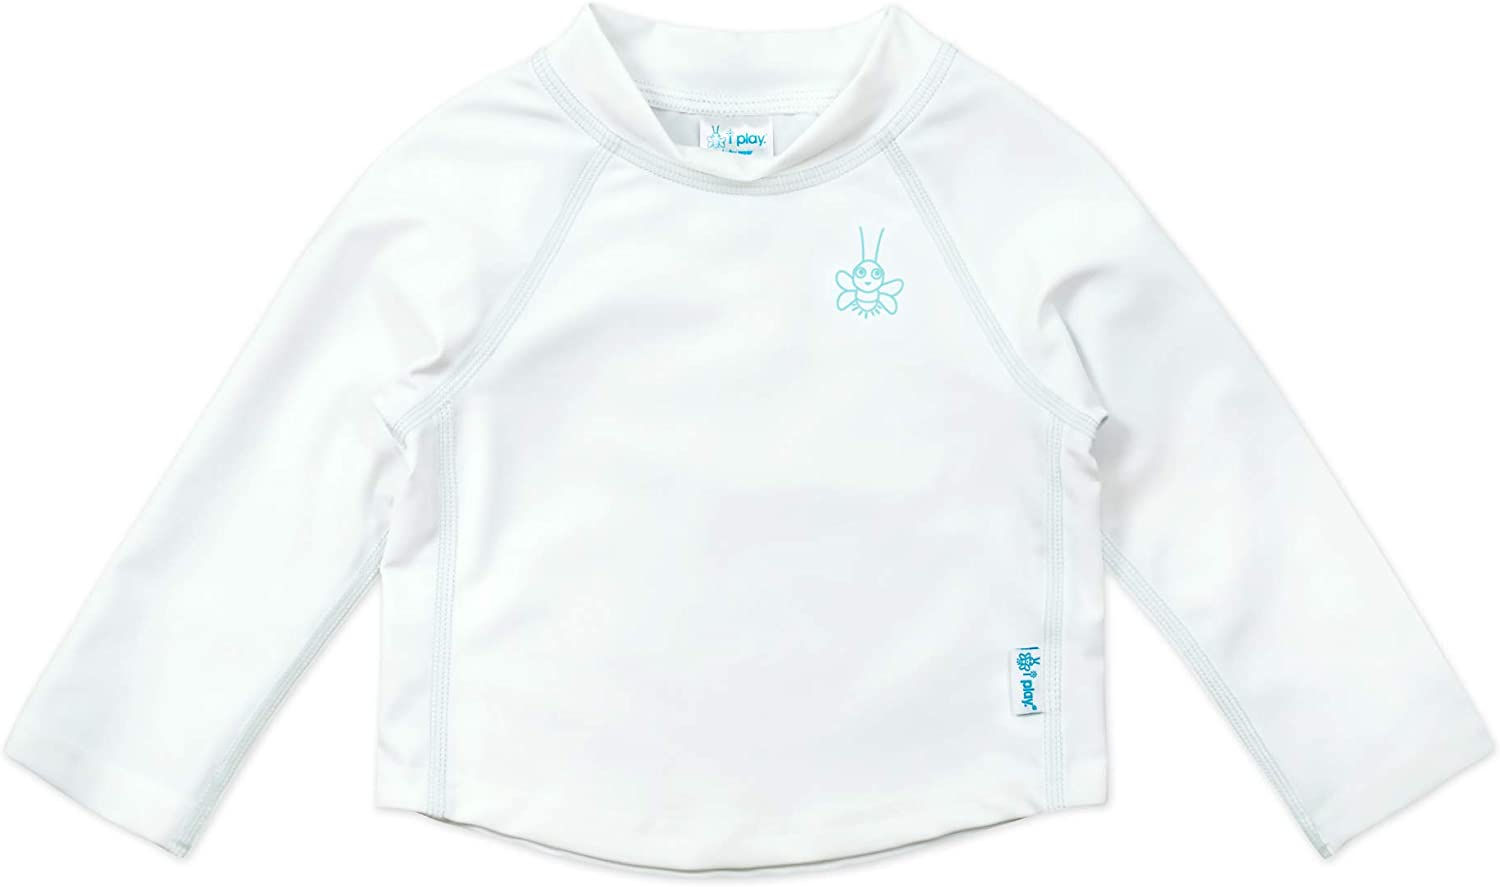 All-day UPF 50 sun protection/—wet or dry,White Classic,24 months Long Sleeve Rashguard Shirt i play